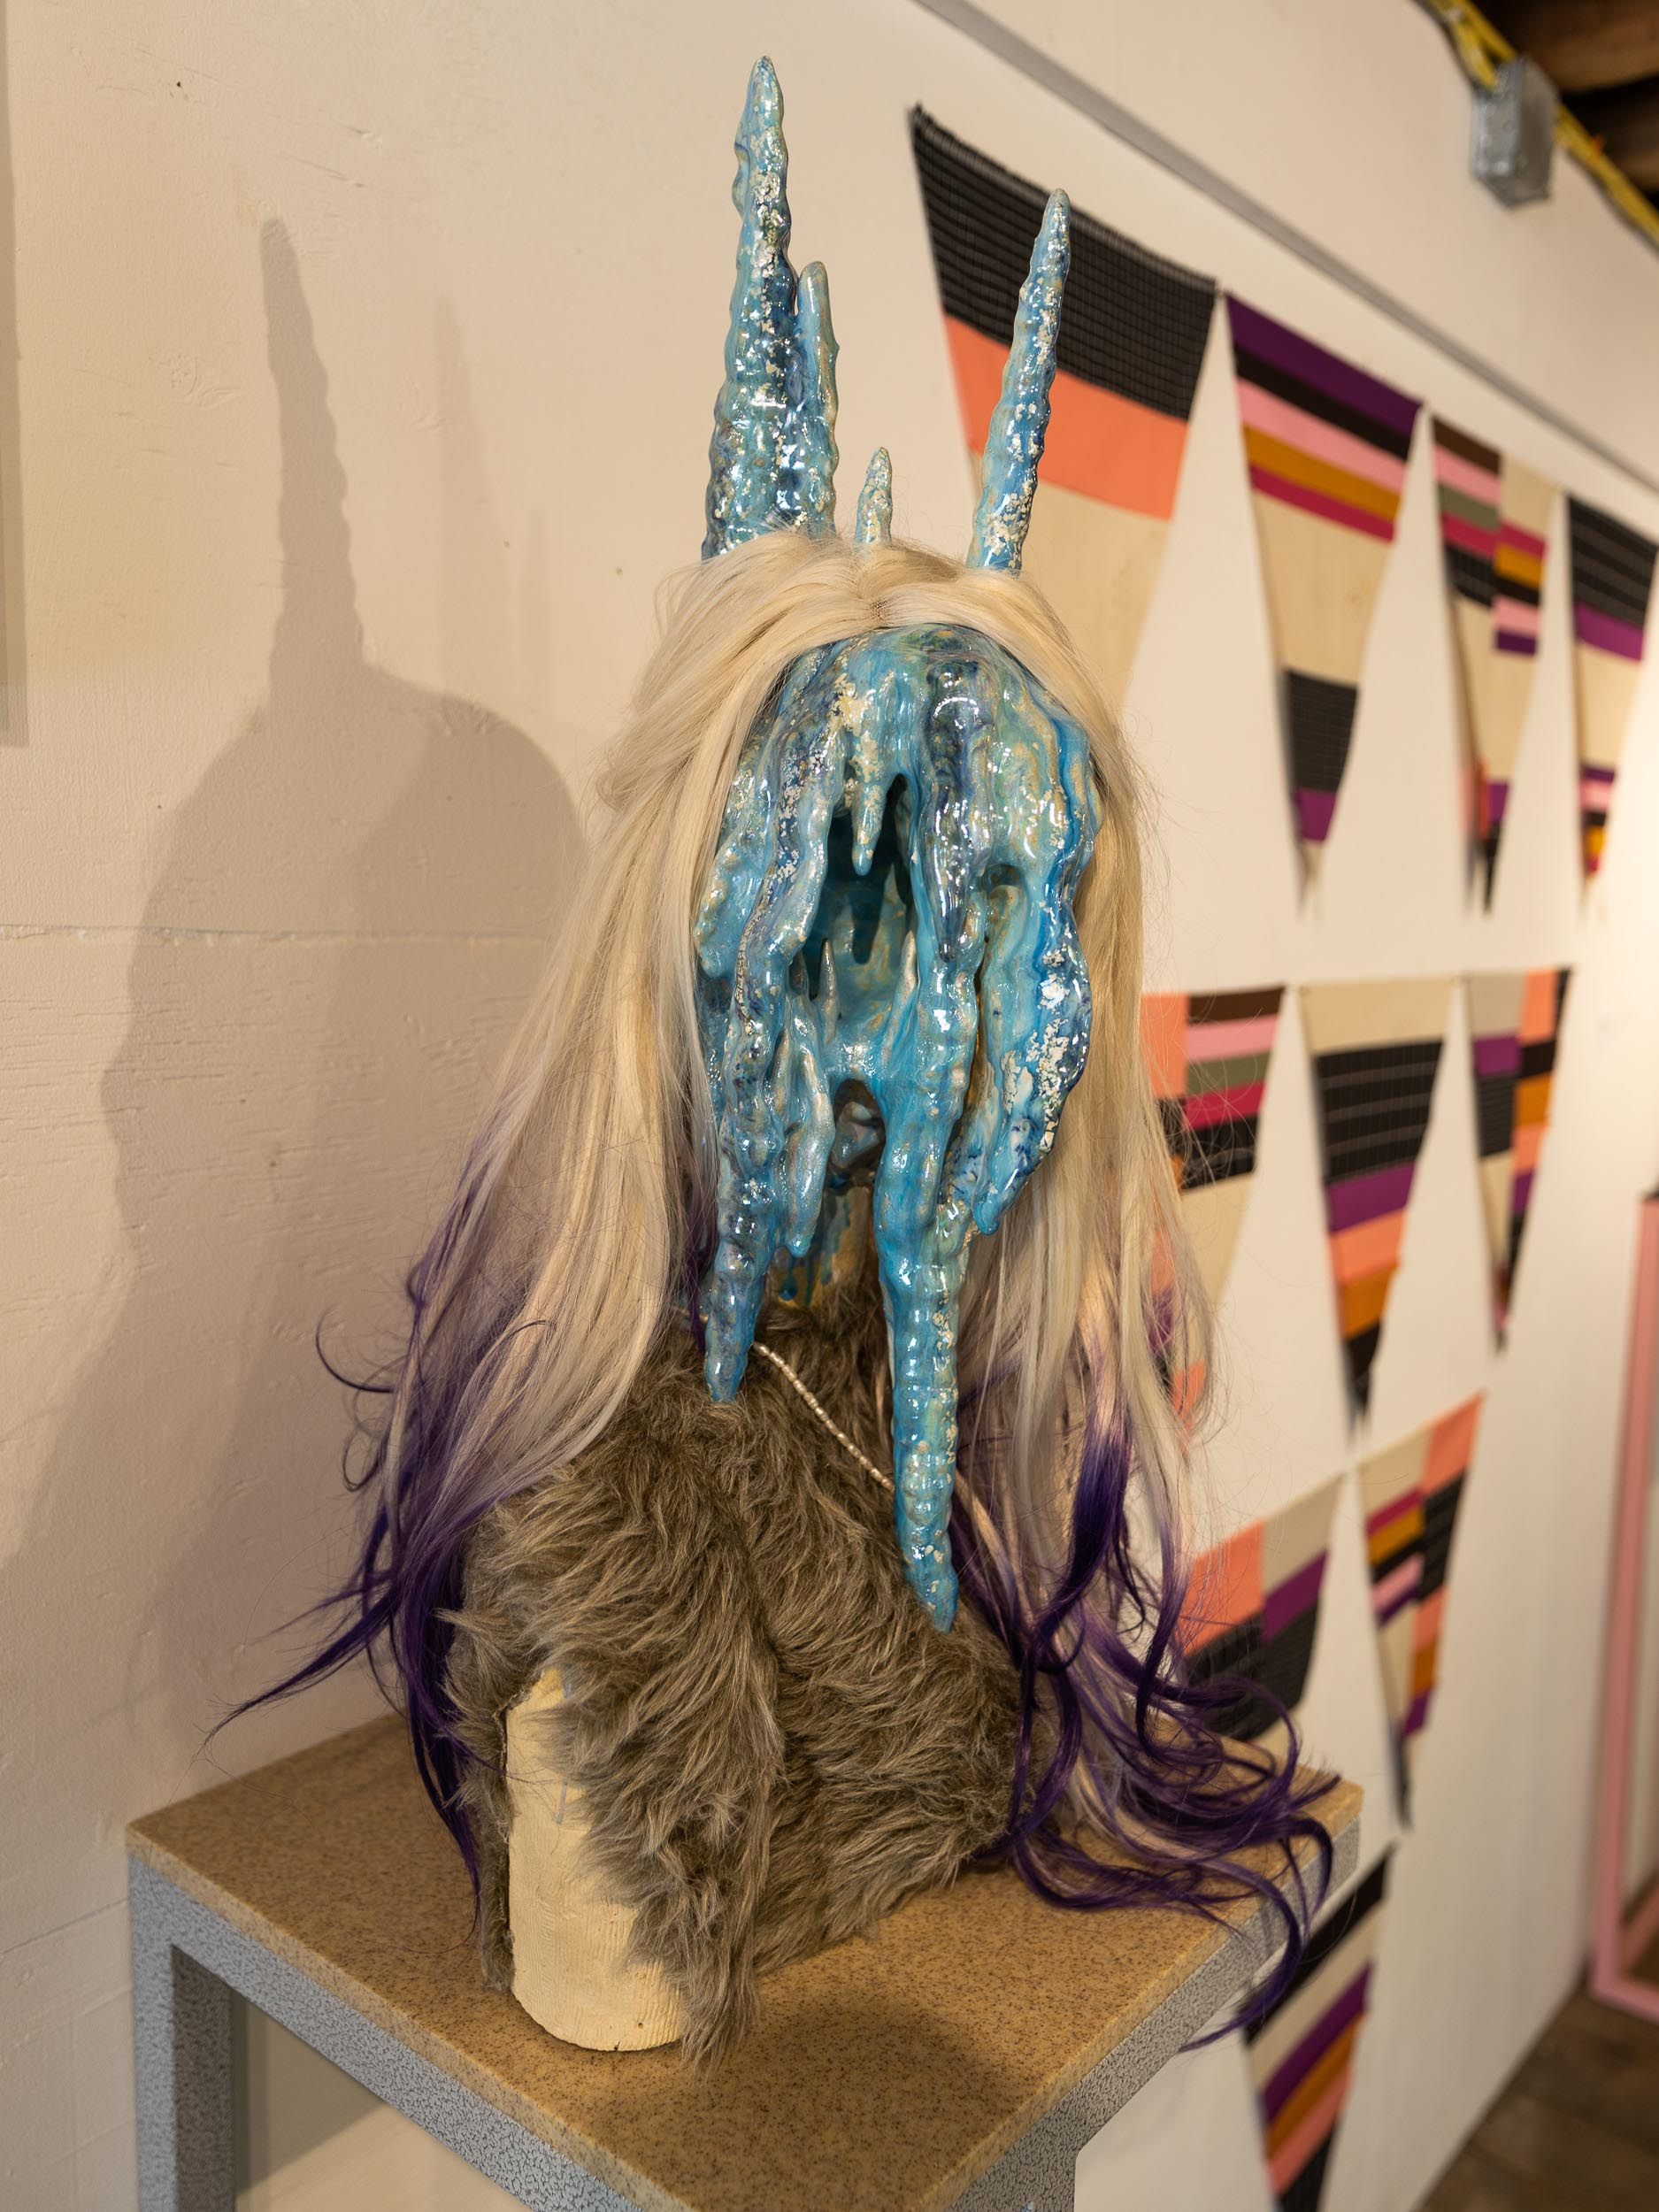 Roxanne Jackson,  Bedroom Eyes  (2018) Ceramic, glaze, luster, wig, freshwater pearls, faux fur; 16 x 28 x 11 inches